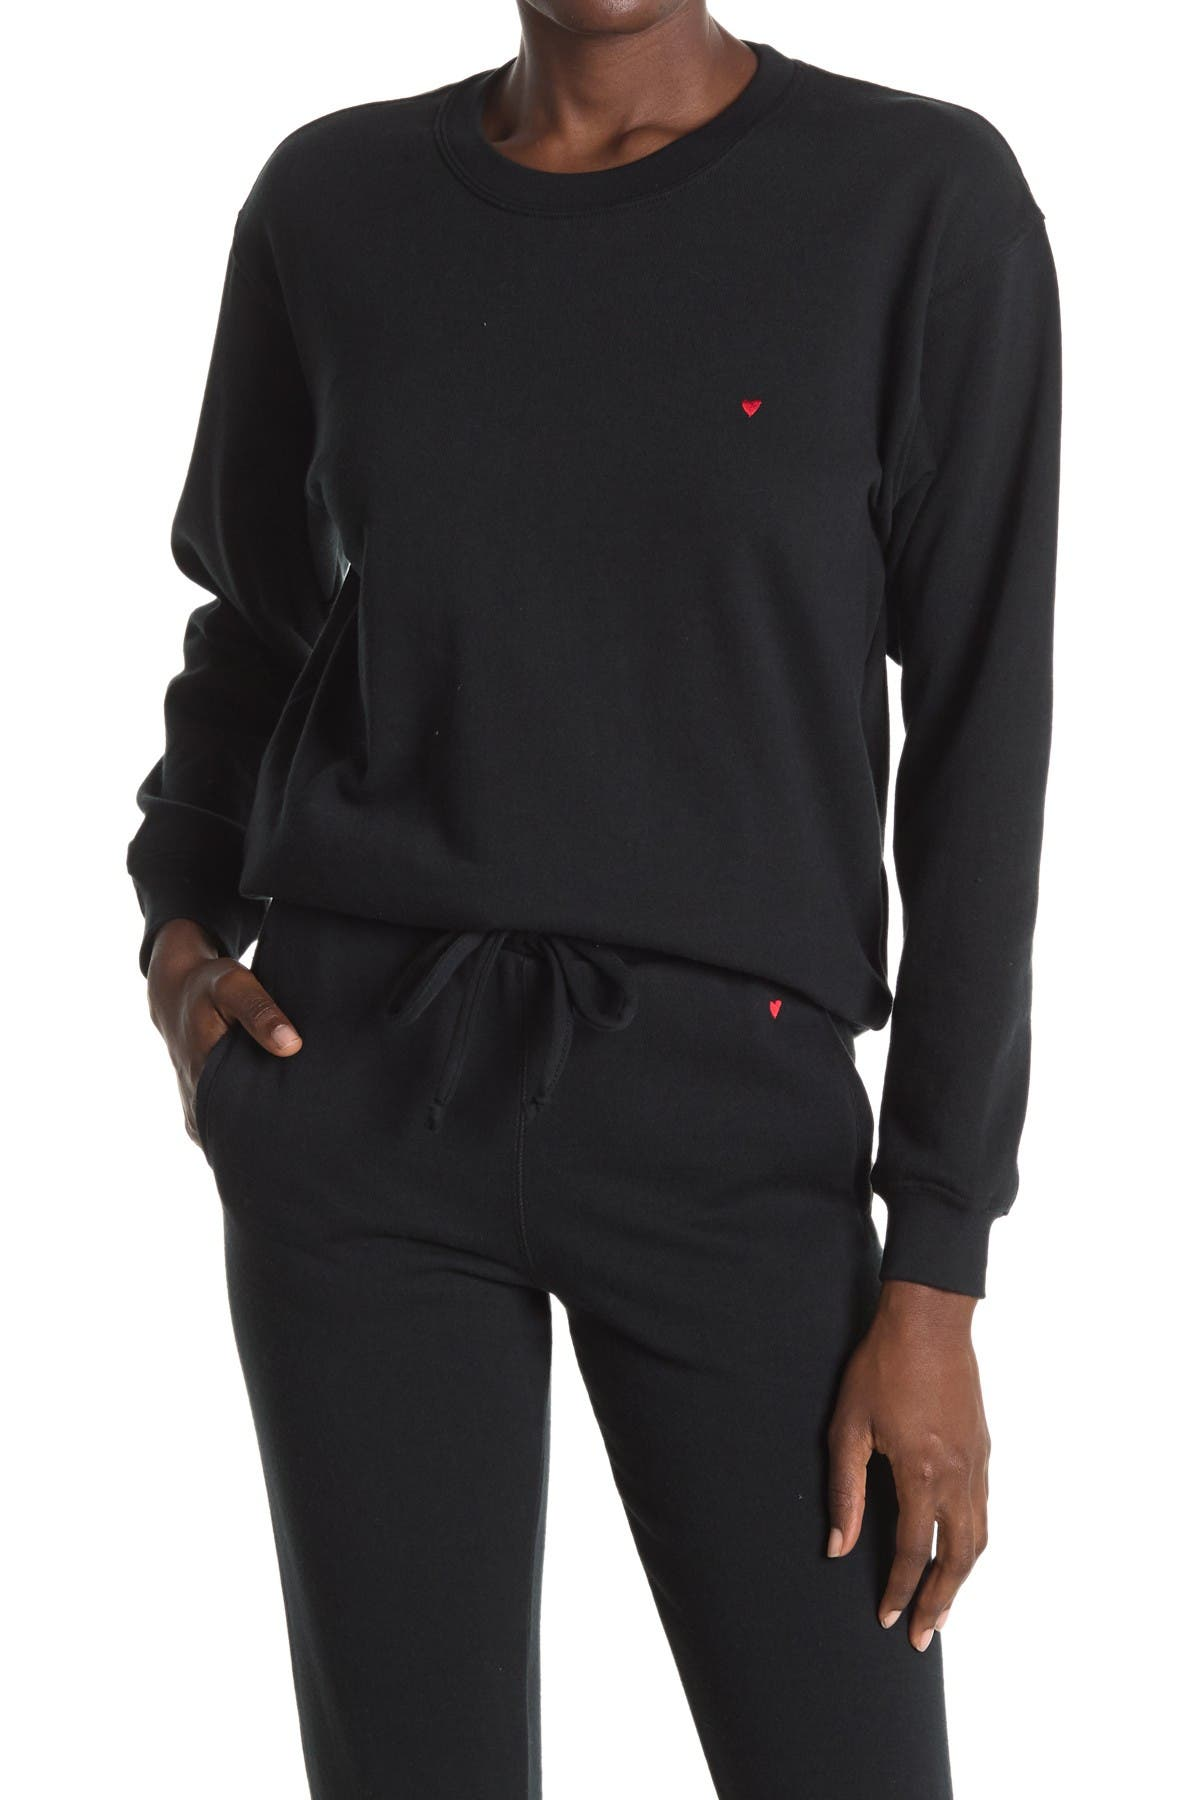 Image of Sub_Urban Riot Embroidered Heart Pullover Sweatshirt